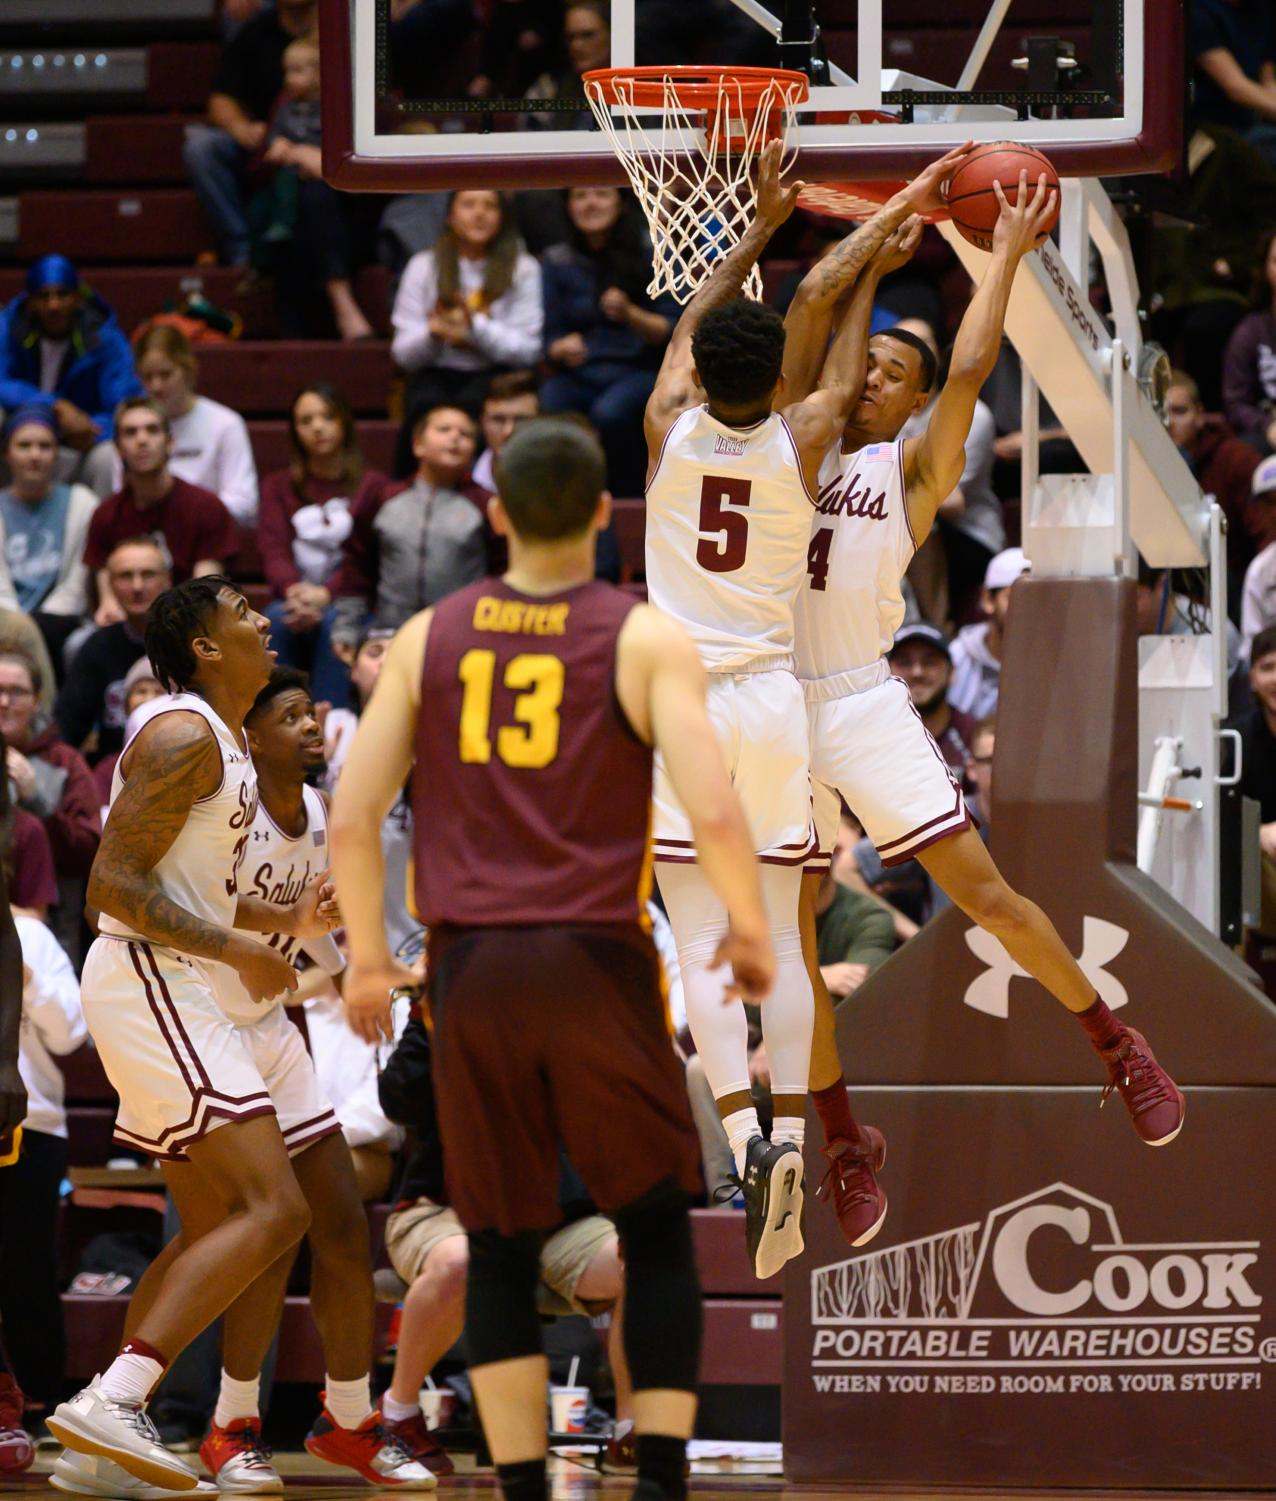 Southern+Illinois+Salukis+guard+Eric+McGill+and+Southern+Illinois+Salukis+guard+Darius+Beane+go+for+the+rebound+on+Sunday%2C+Feb.+24%2C+2019%2C+during+a+matchup+between+the+Southern+Illinois+Salukis+and+the+Loyola+Ramblers+at+SIU+Arena.